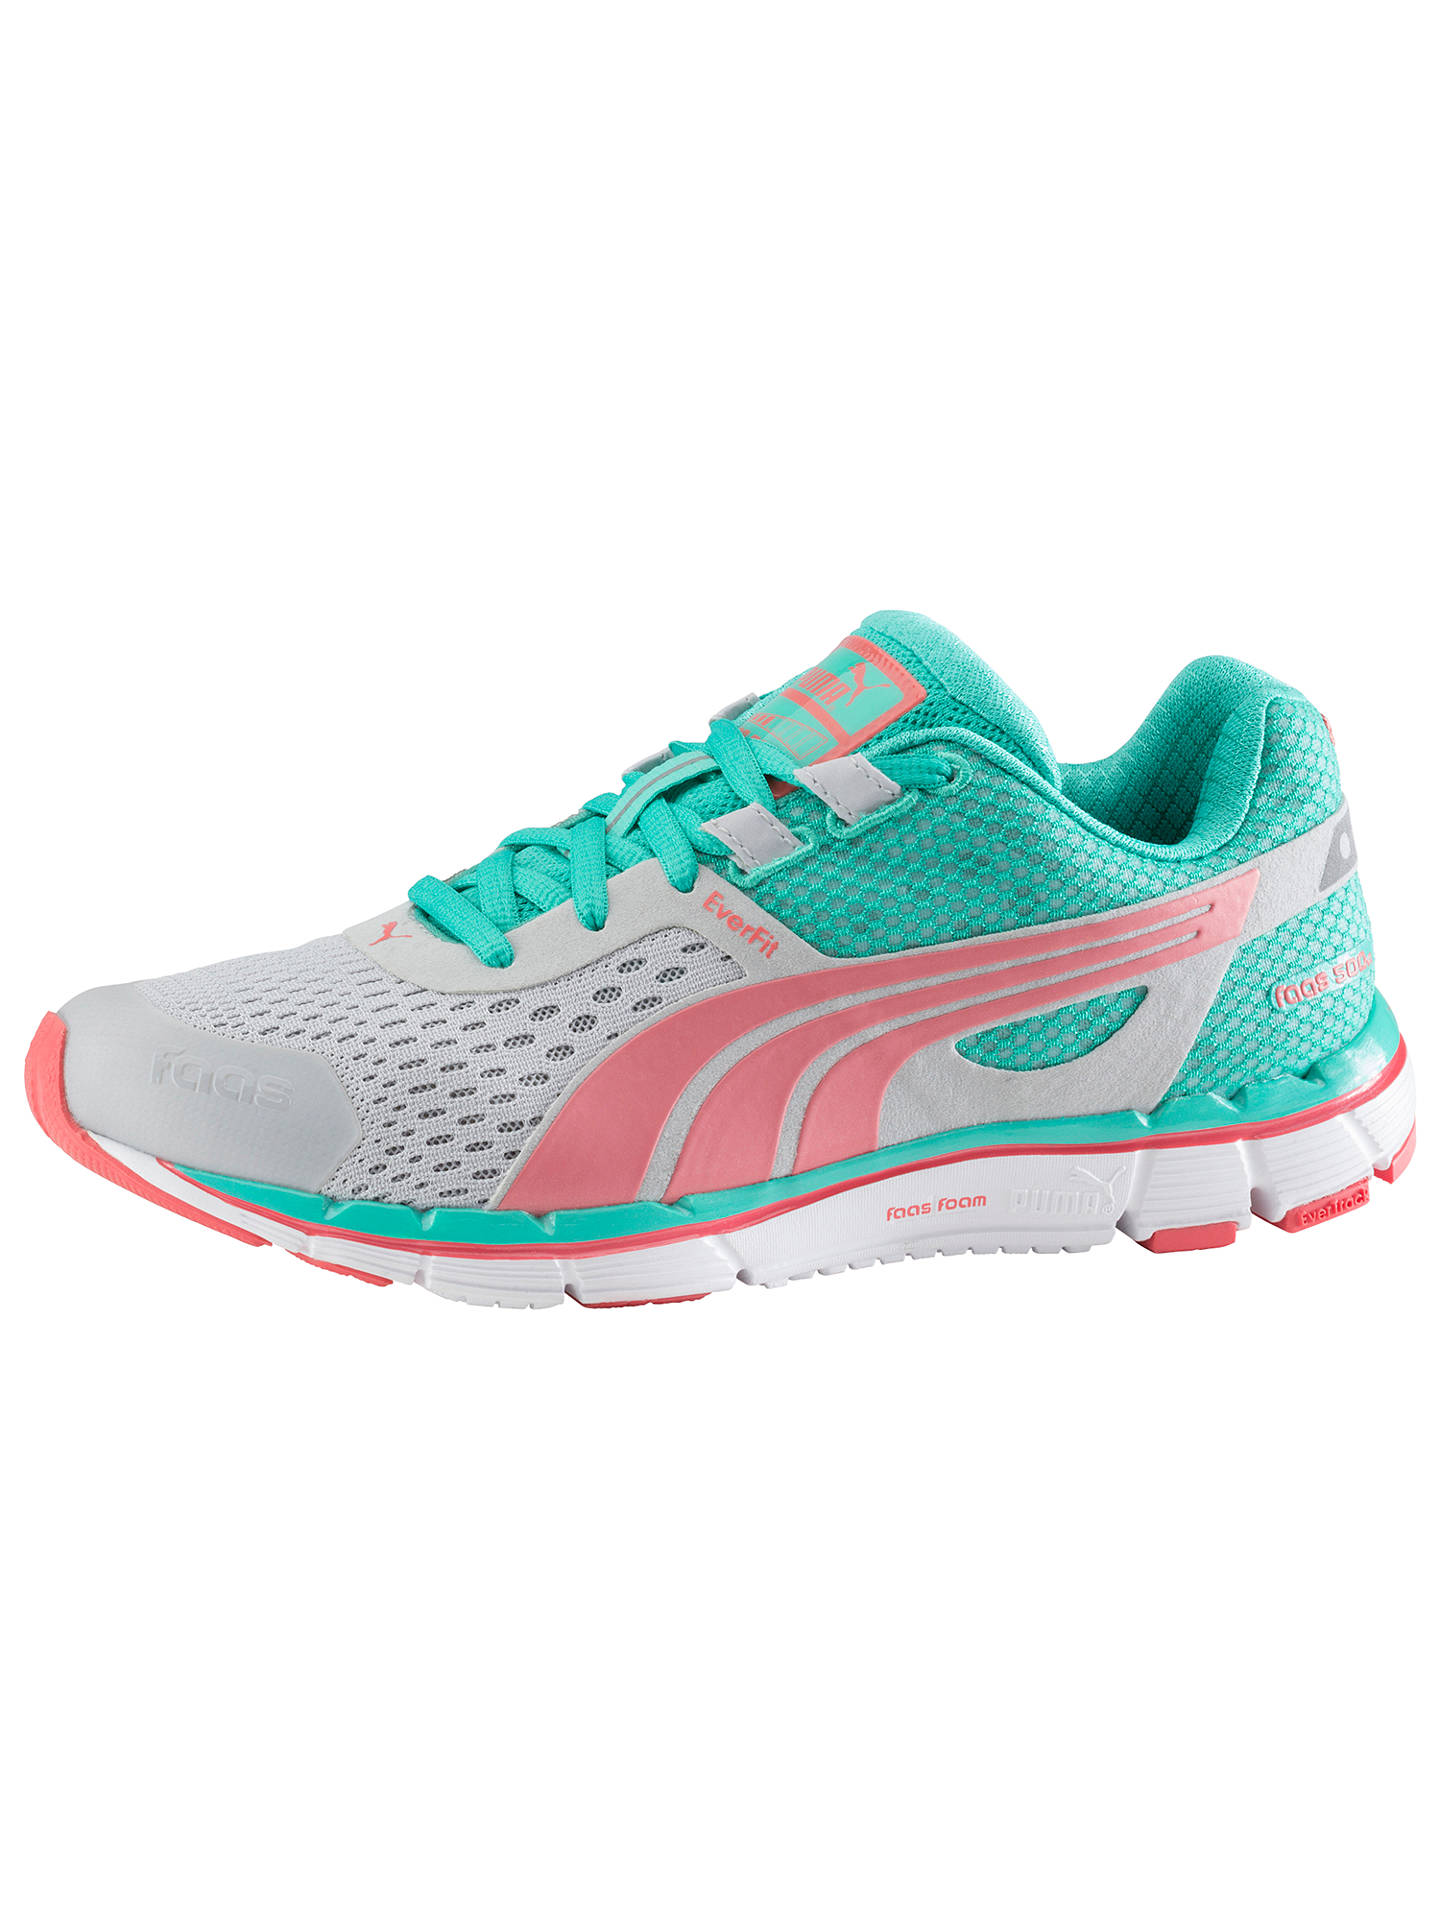 BuyPuma Faas 500 Women s Running Shoes f7062a8ca6